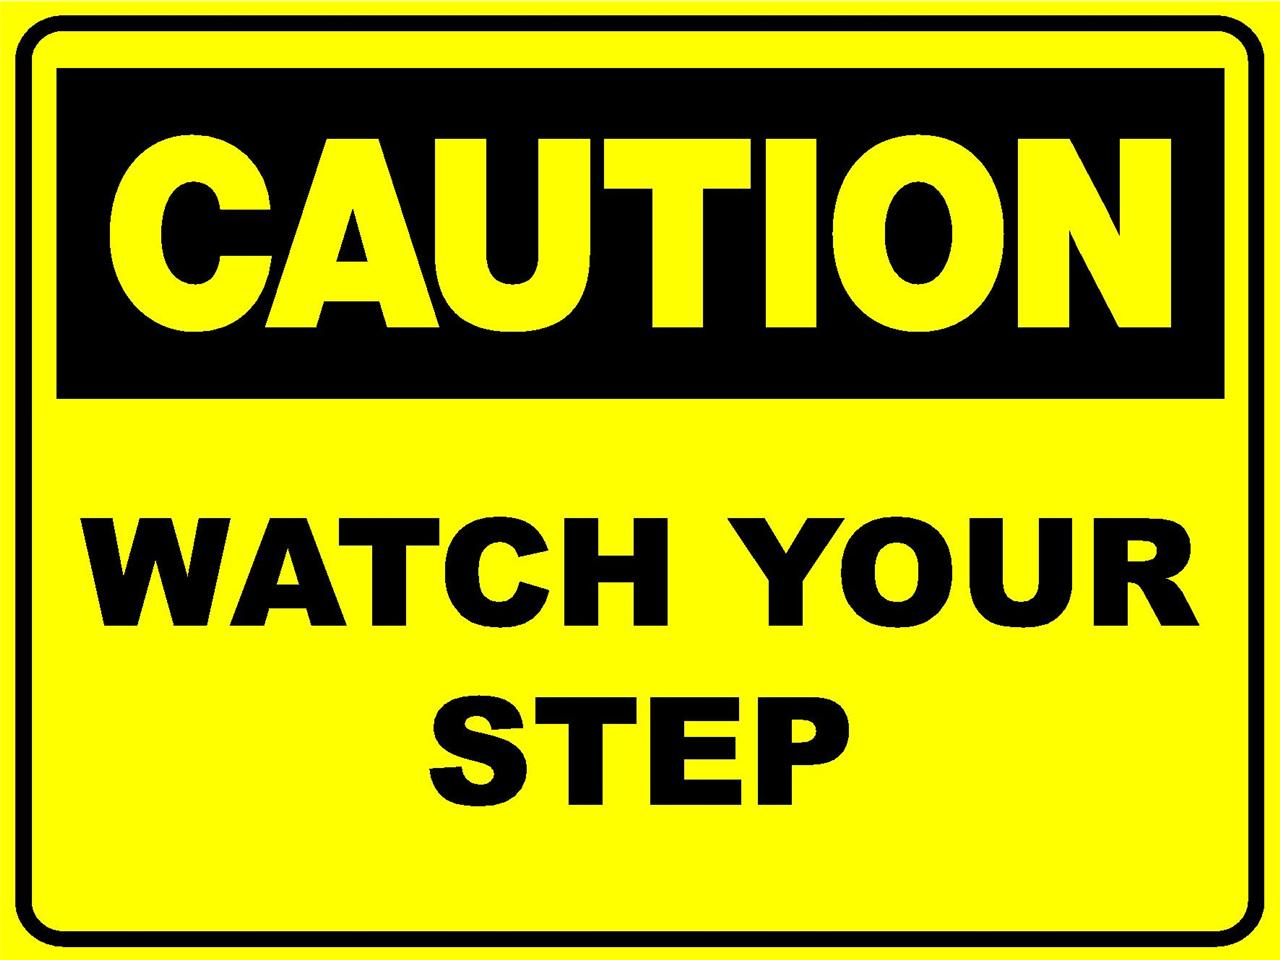 caution watch your step 300 x 200mm corflute sign ebay